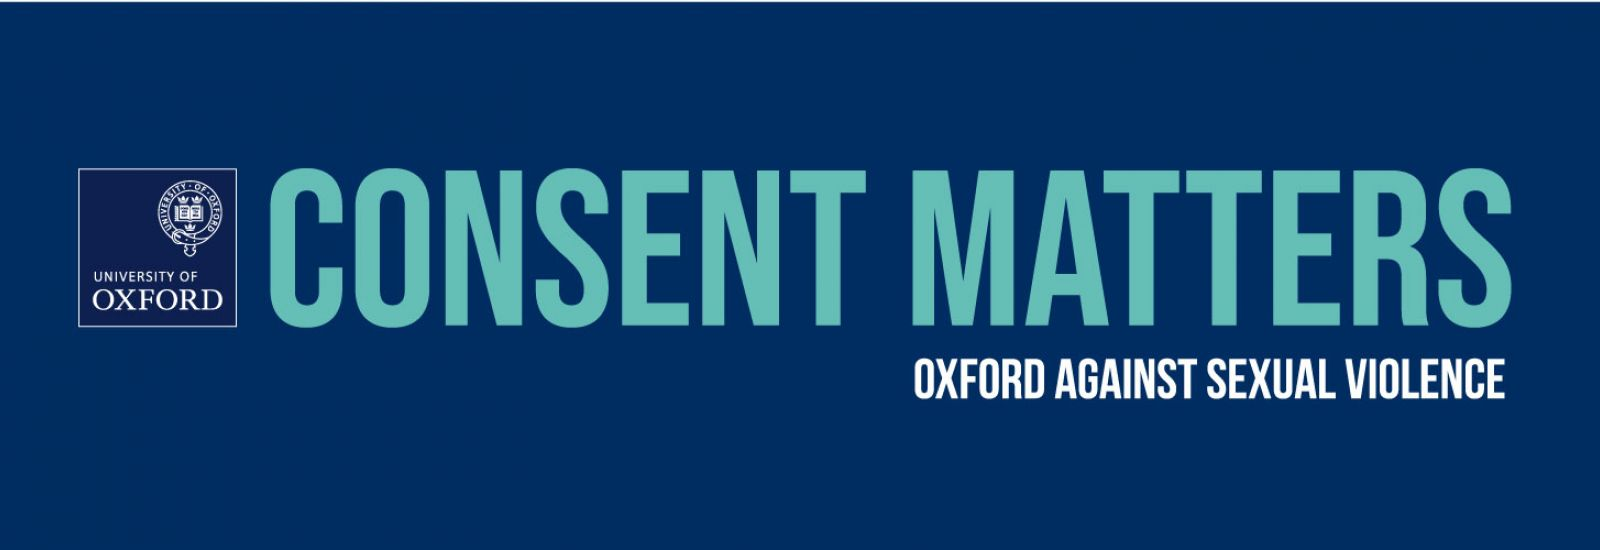 Consent Matters - Oxford Against Sexual Violence - University of Oxford